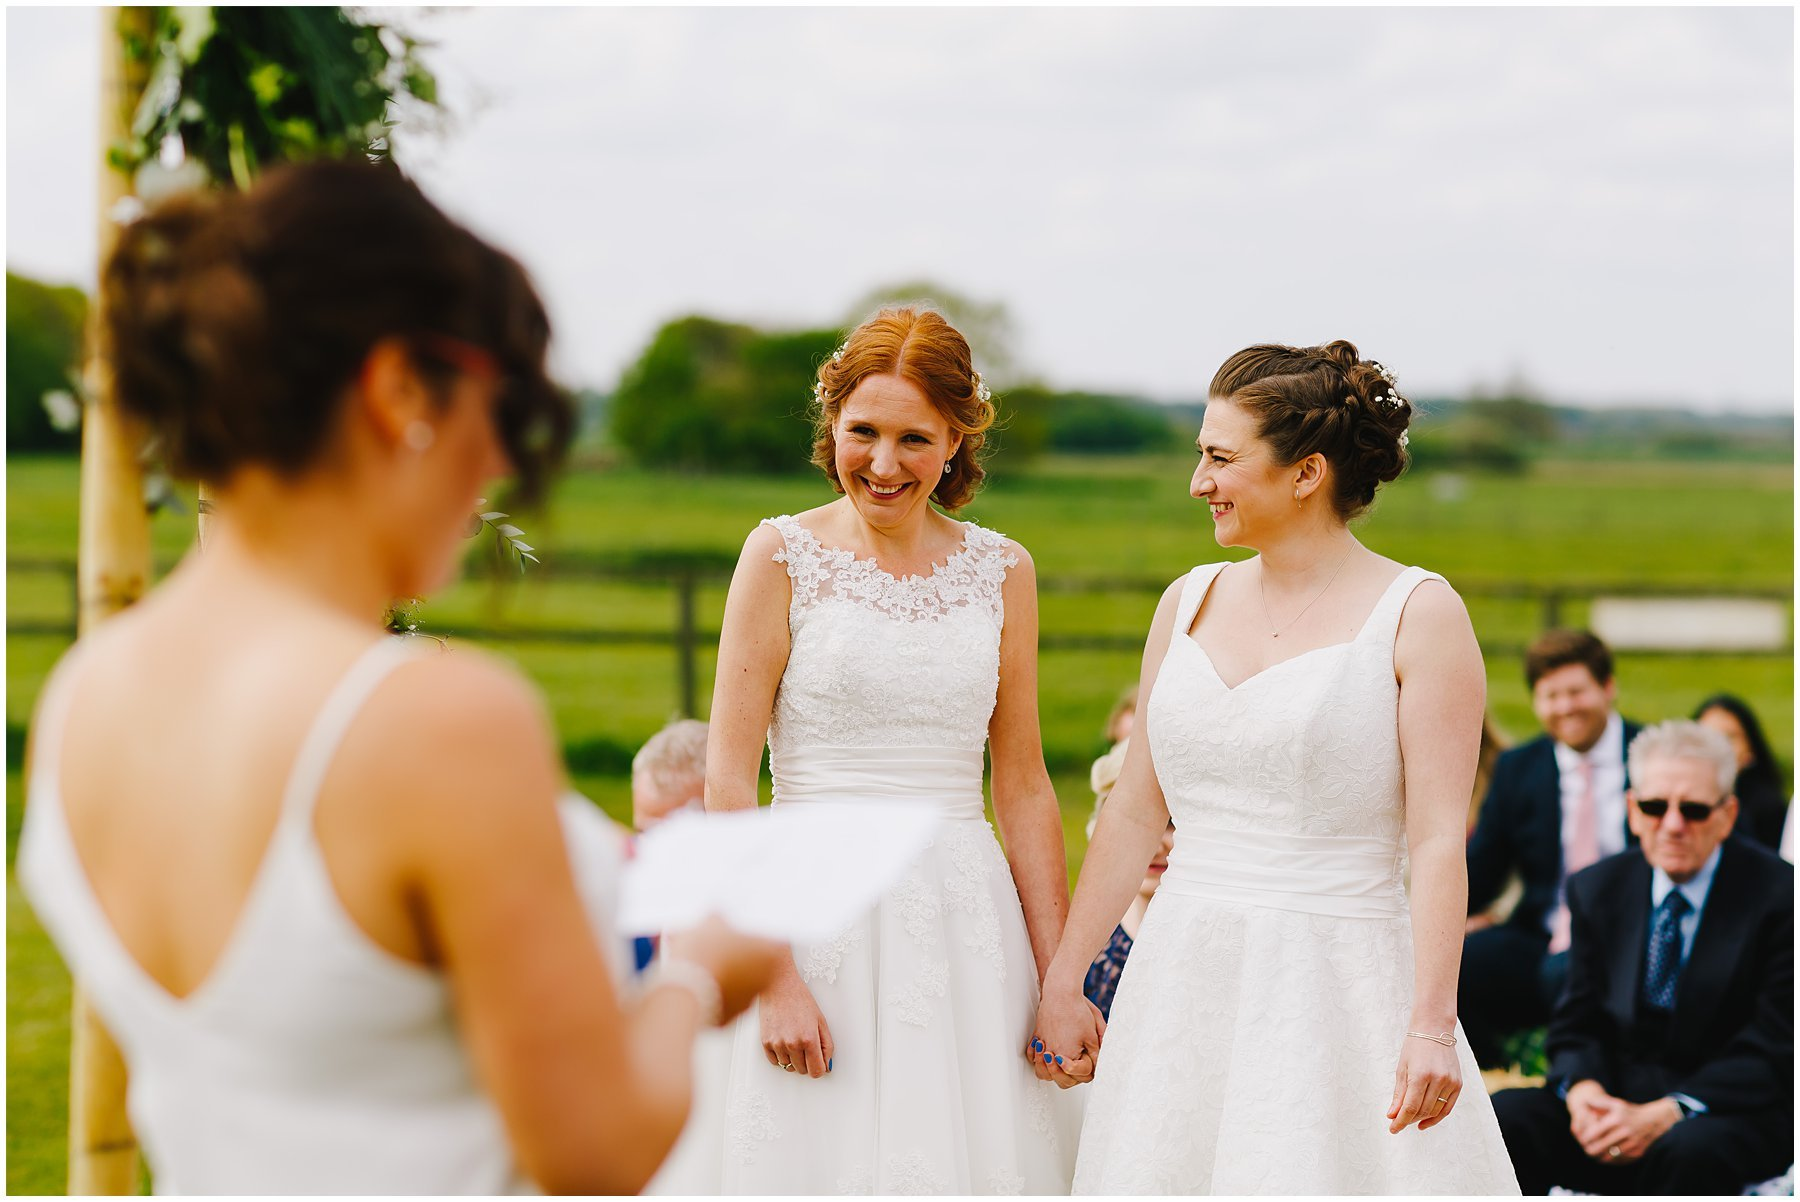 Andy Davison - Godwick Hall and Great Barn Wedding Photographer